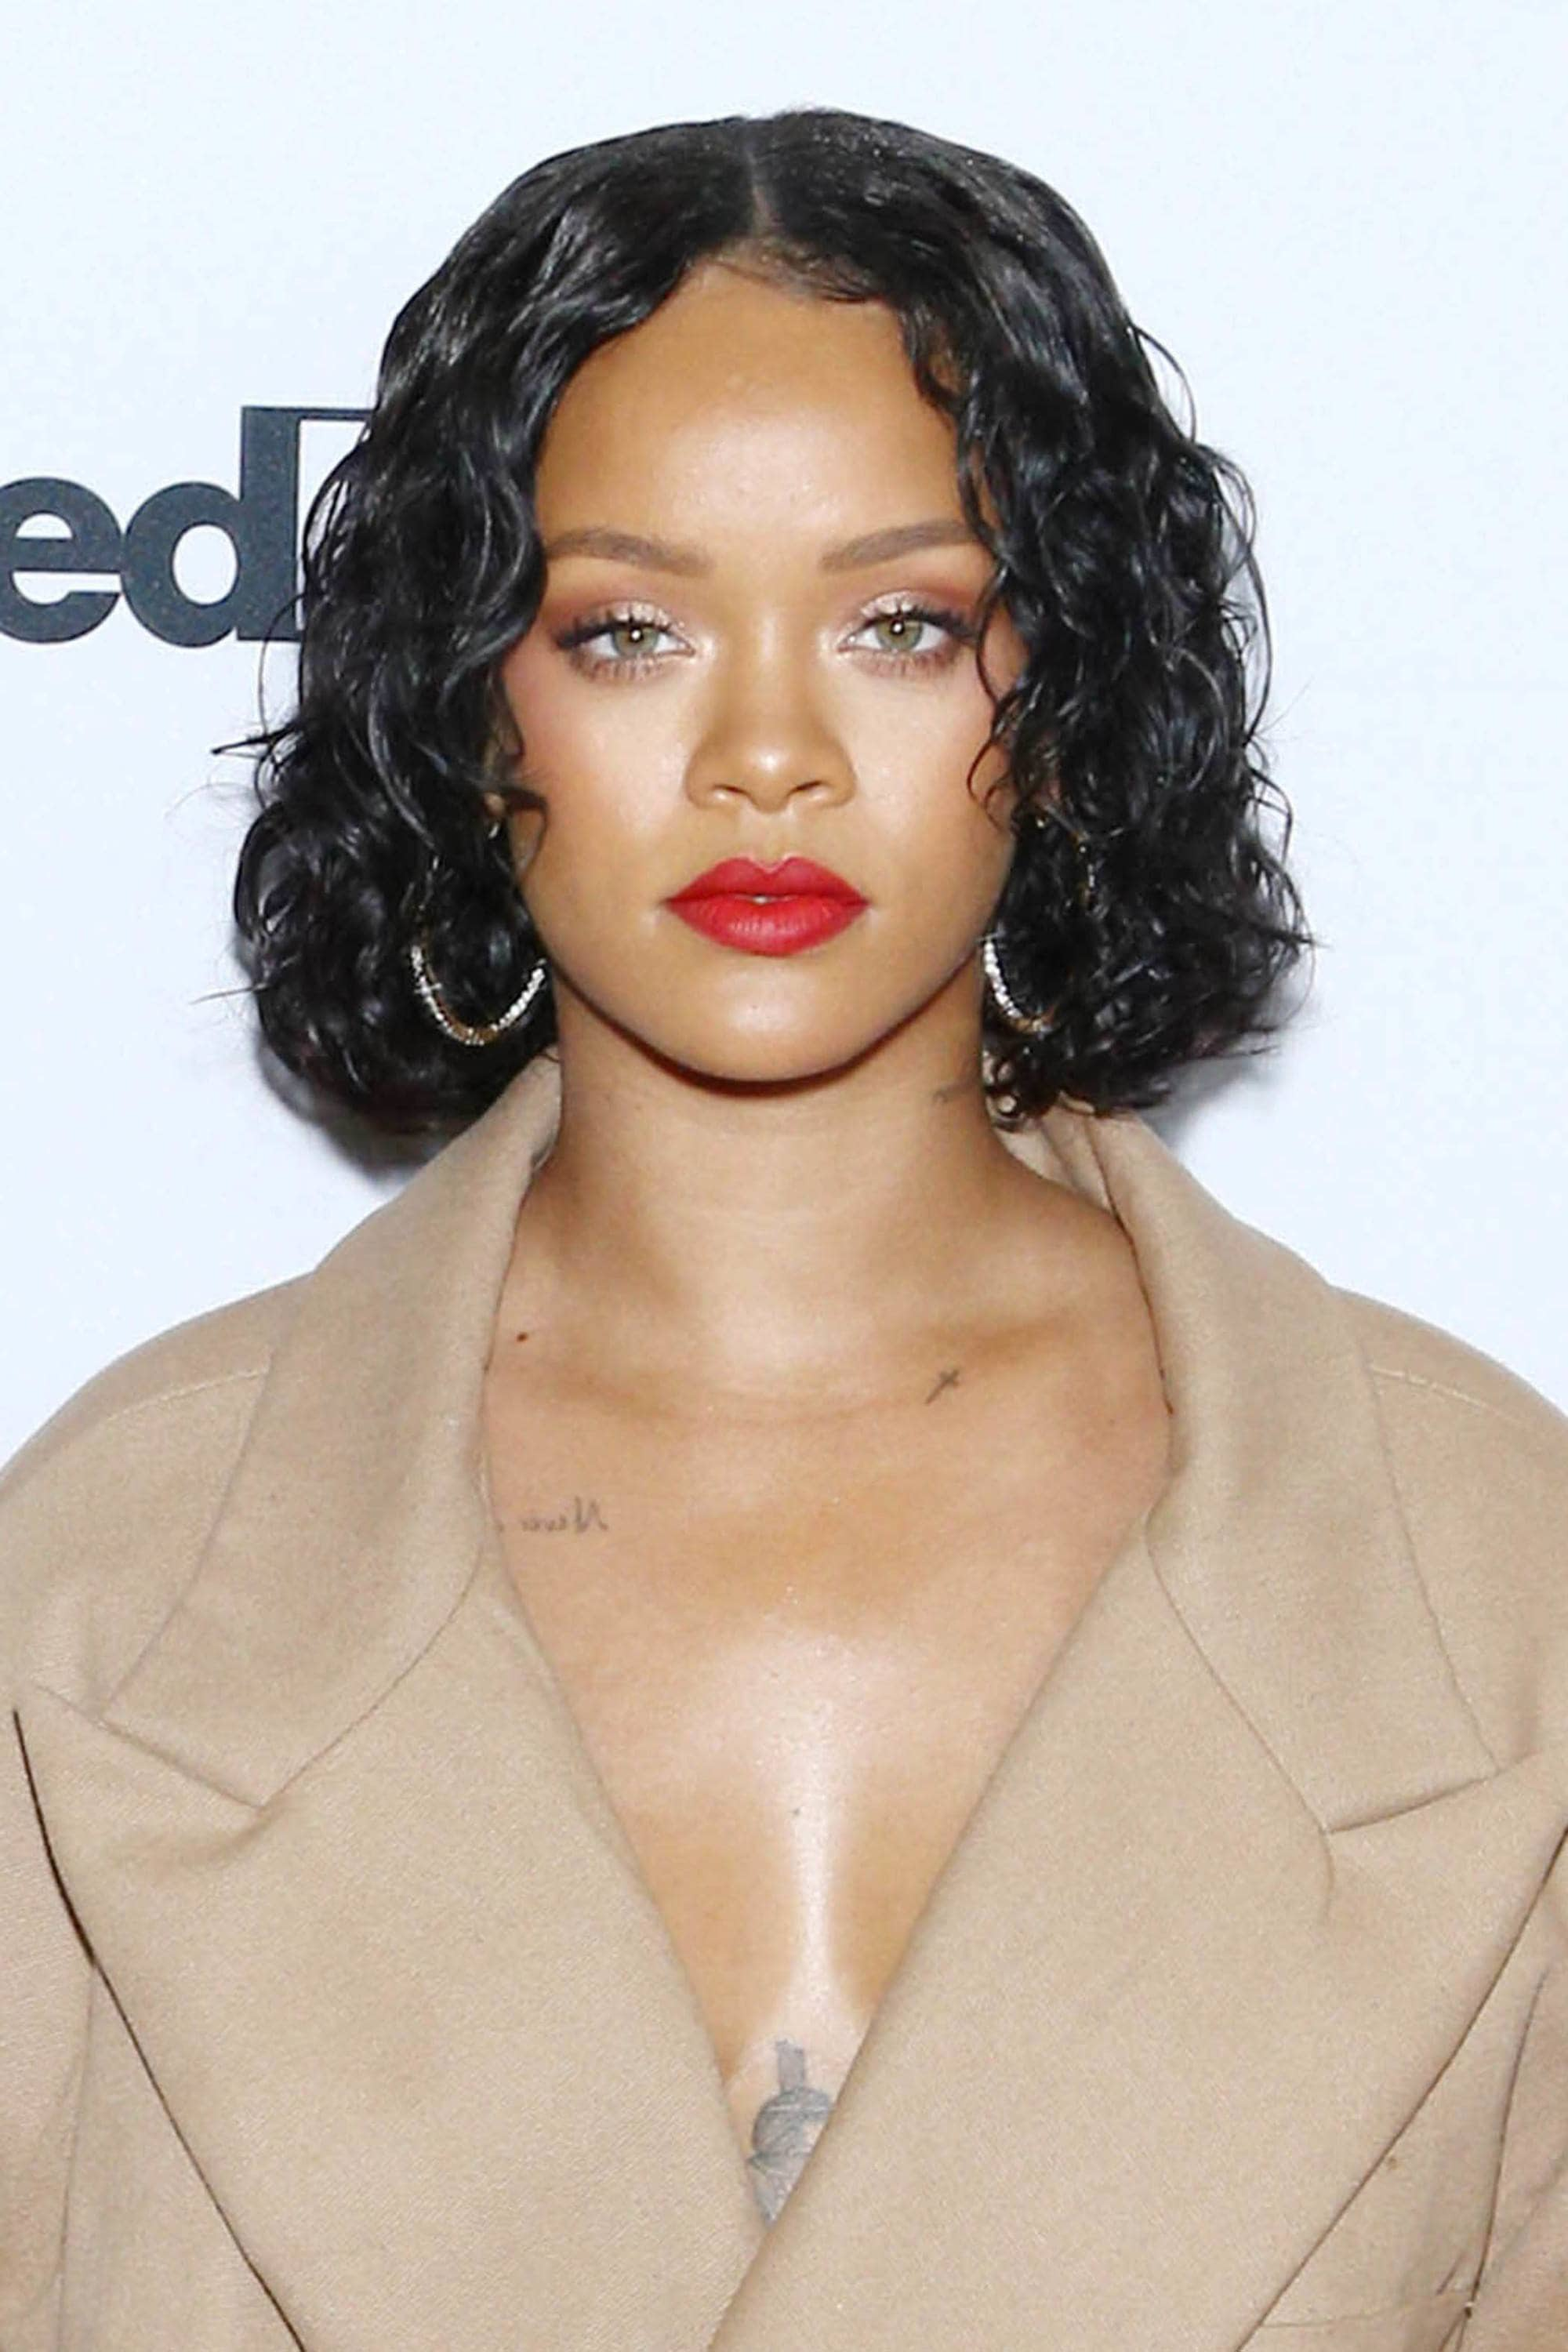 Rihanna on the red carpet with dark short curly bob hair, wearing red lipstick with camel jacket and hoop earrings